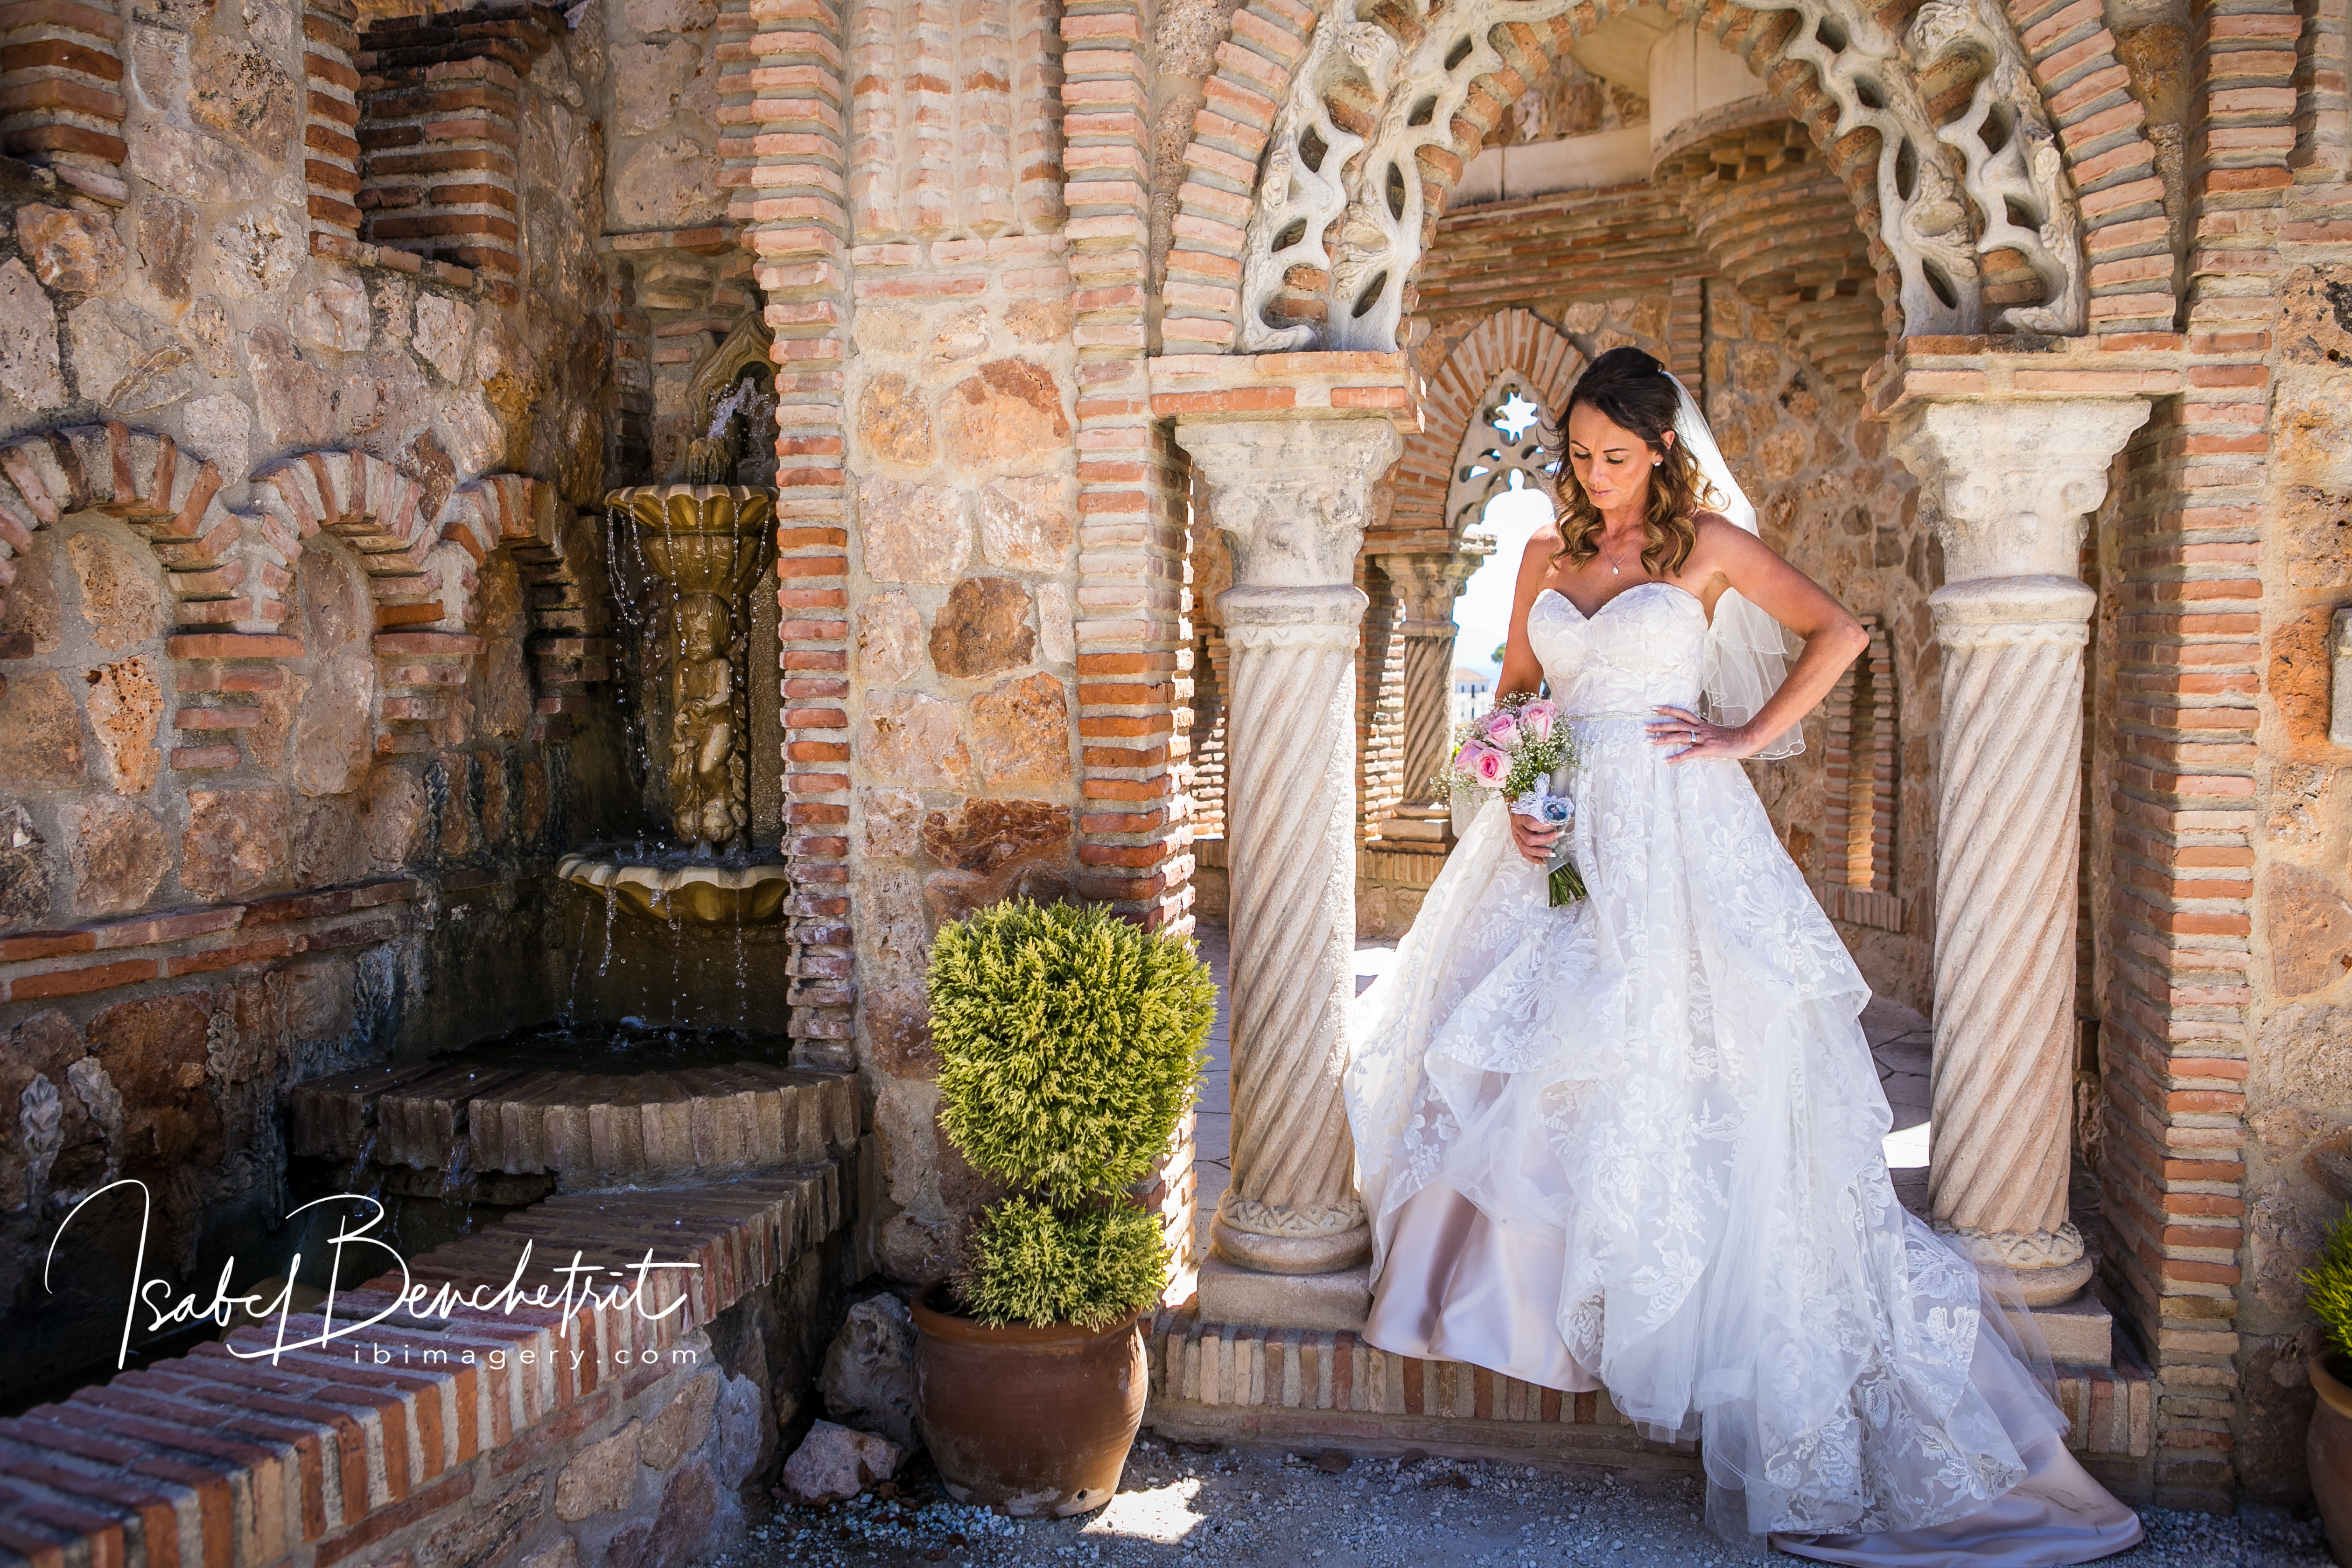 The beautiful bride in her gown